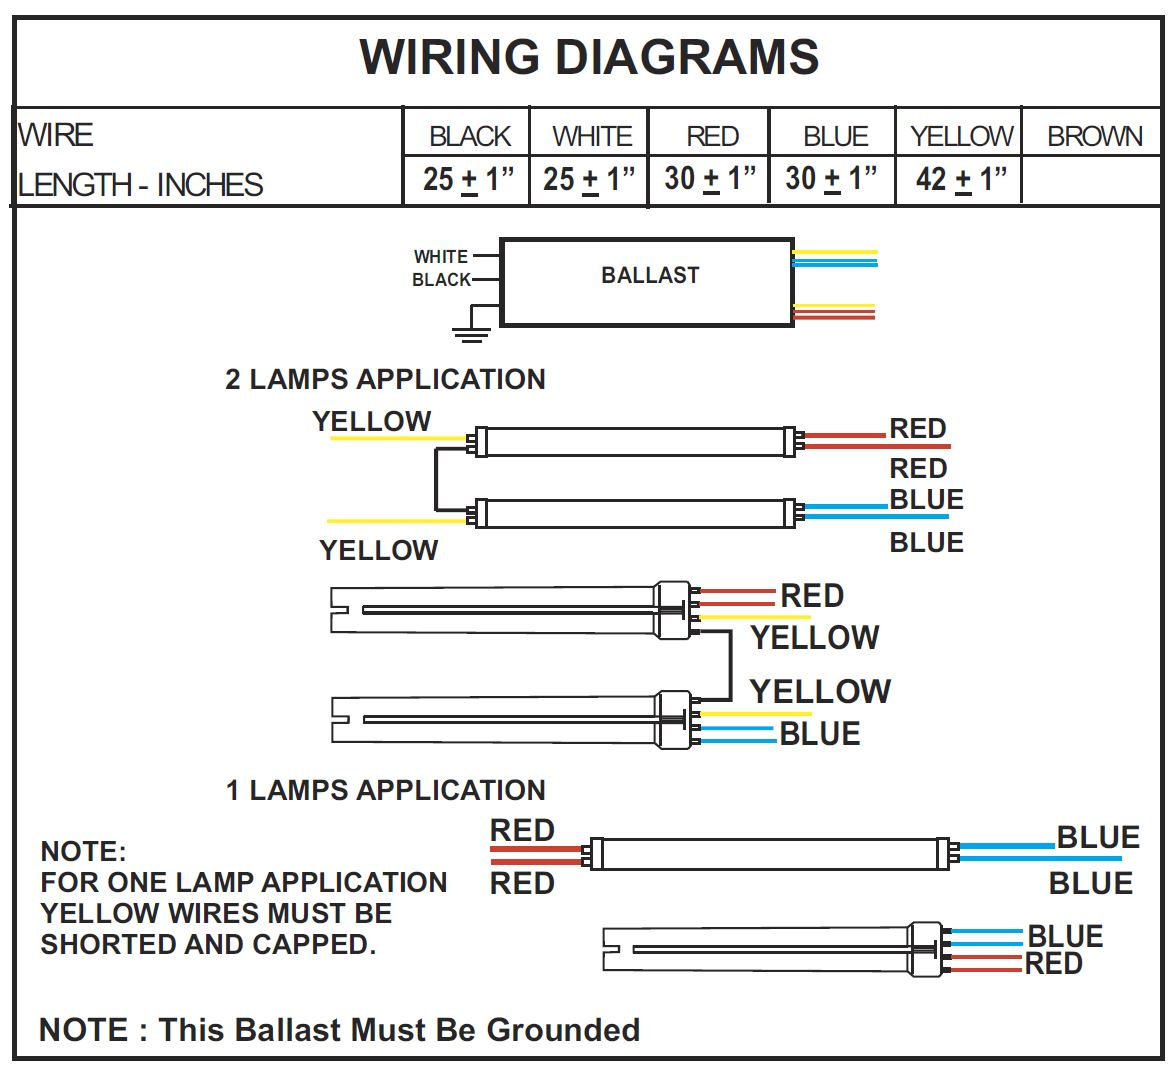 Electronic Ballast Circuit Diagram as well o Conectar Un Relai T1041166 as well 96296  o Poner Relay En Halogenos moreover Ballast Wiring Diagram T12 together with Dimmable Fluorescent Ballast Wiring Diagram. on 3 lamp t5 emergency ballast wiring diagram